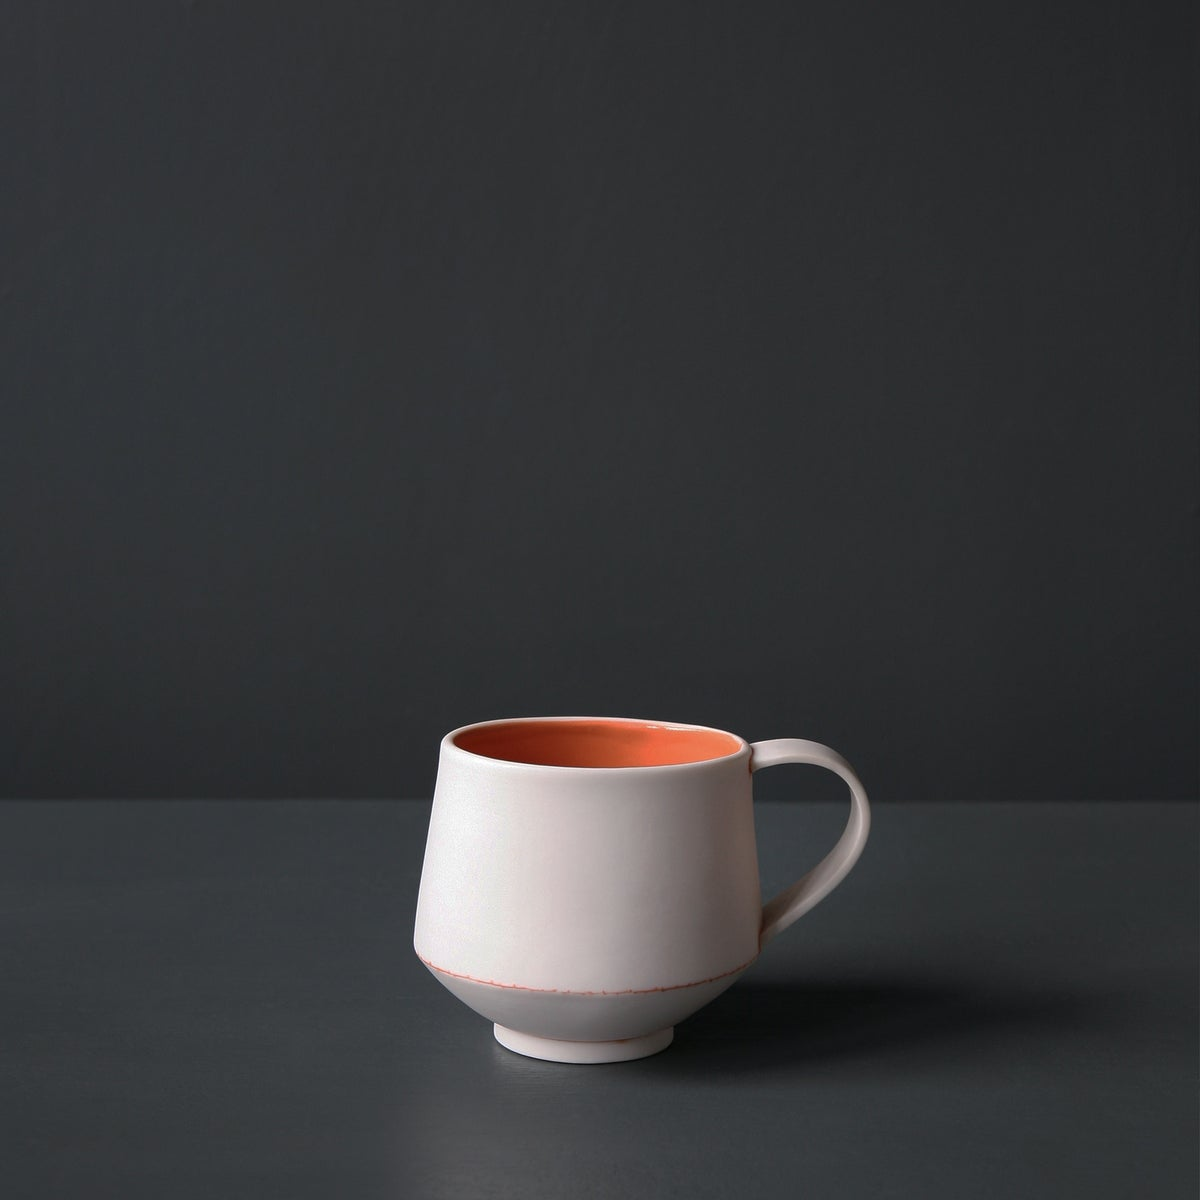 Image of Tea Cup by Jessica Thorn.